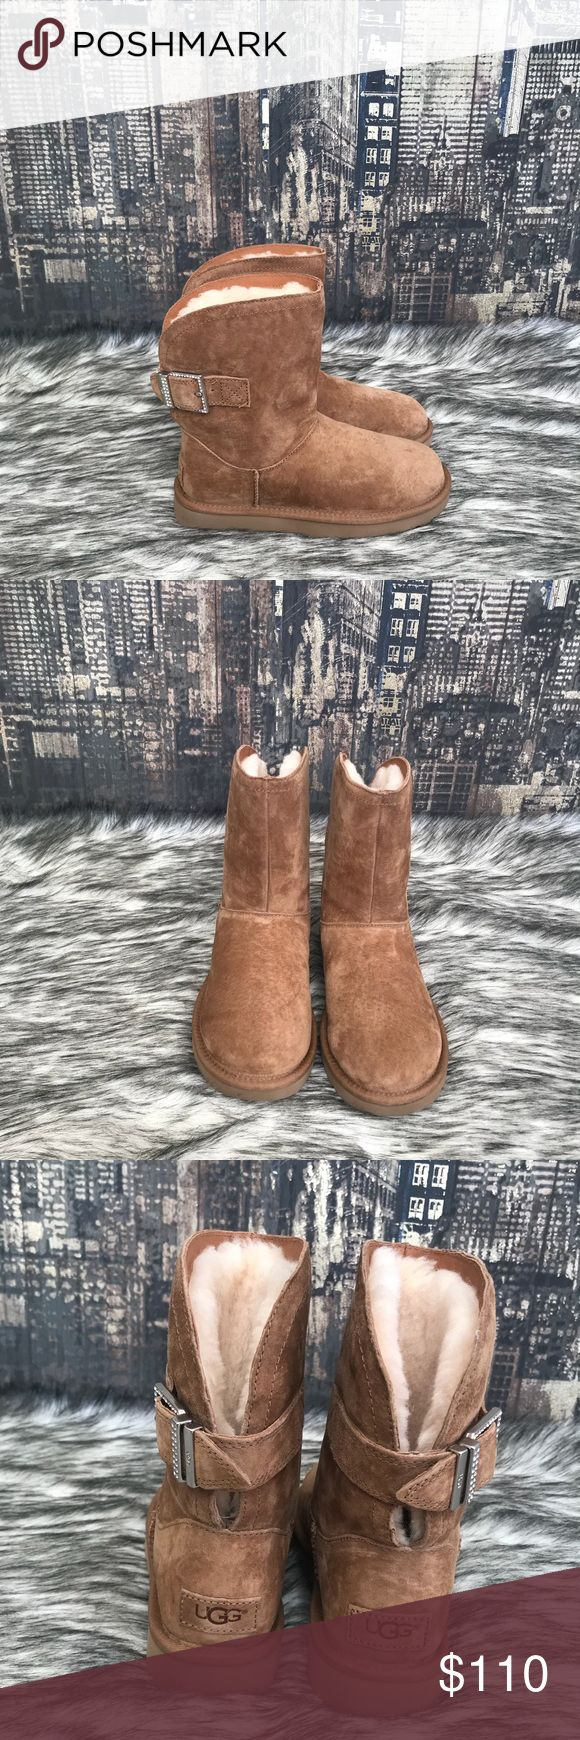 ✨New Women's UGG Remora in Chestnut ✨ ✨Brand New Women's UGG Remora in Chestnut ✨ 🔷 New without tags or box  🔷 100% authentic  🔷 No trades UGG Shoes Ankle Boots & Booties